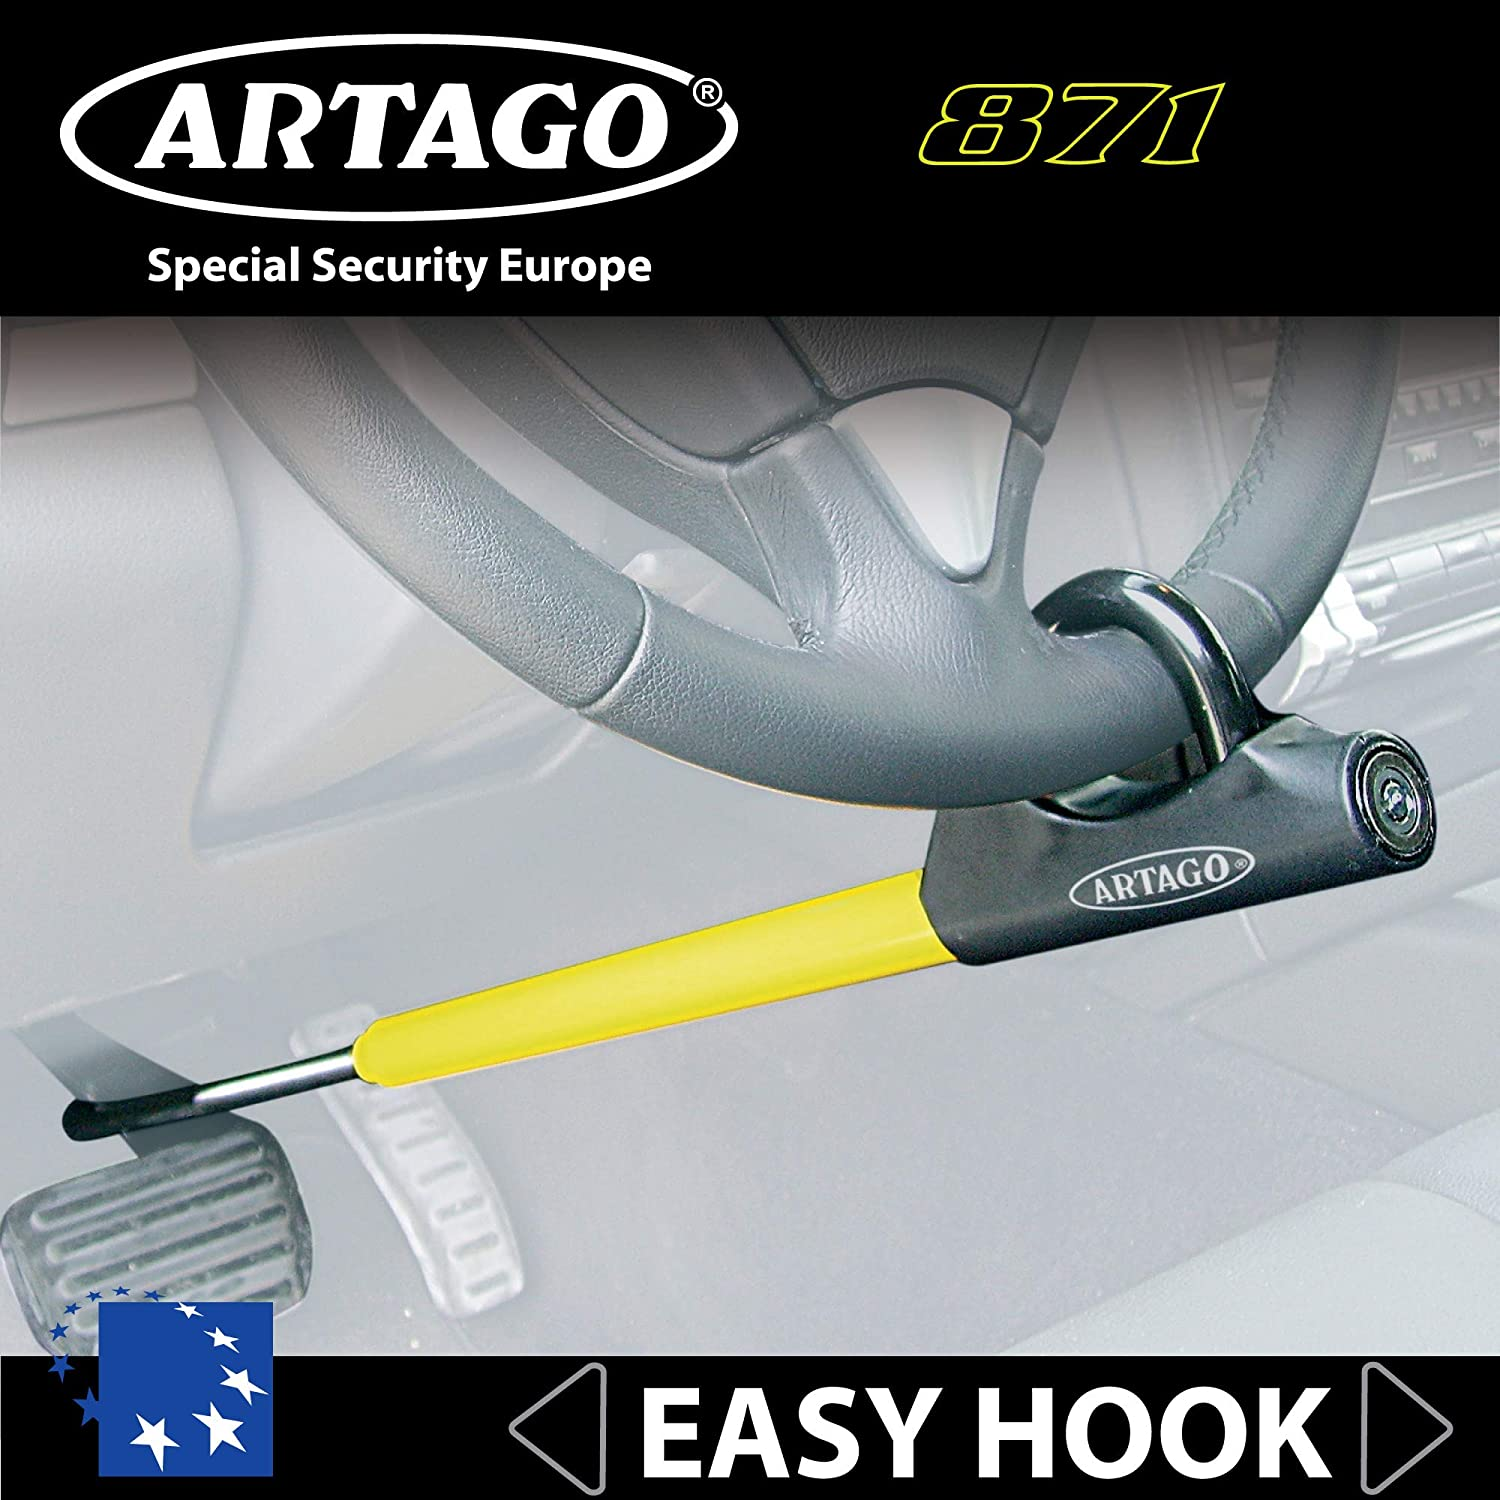 Easy Hook System Optimum Size to Carry Universal Car SUV Artago 871A//B Premium Steering Wheel Pedal Lock